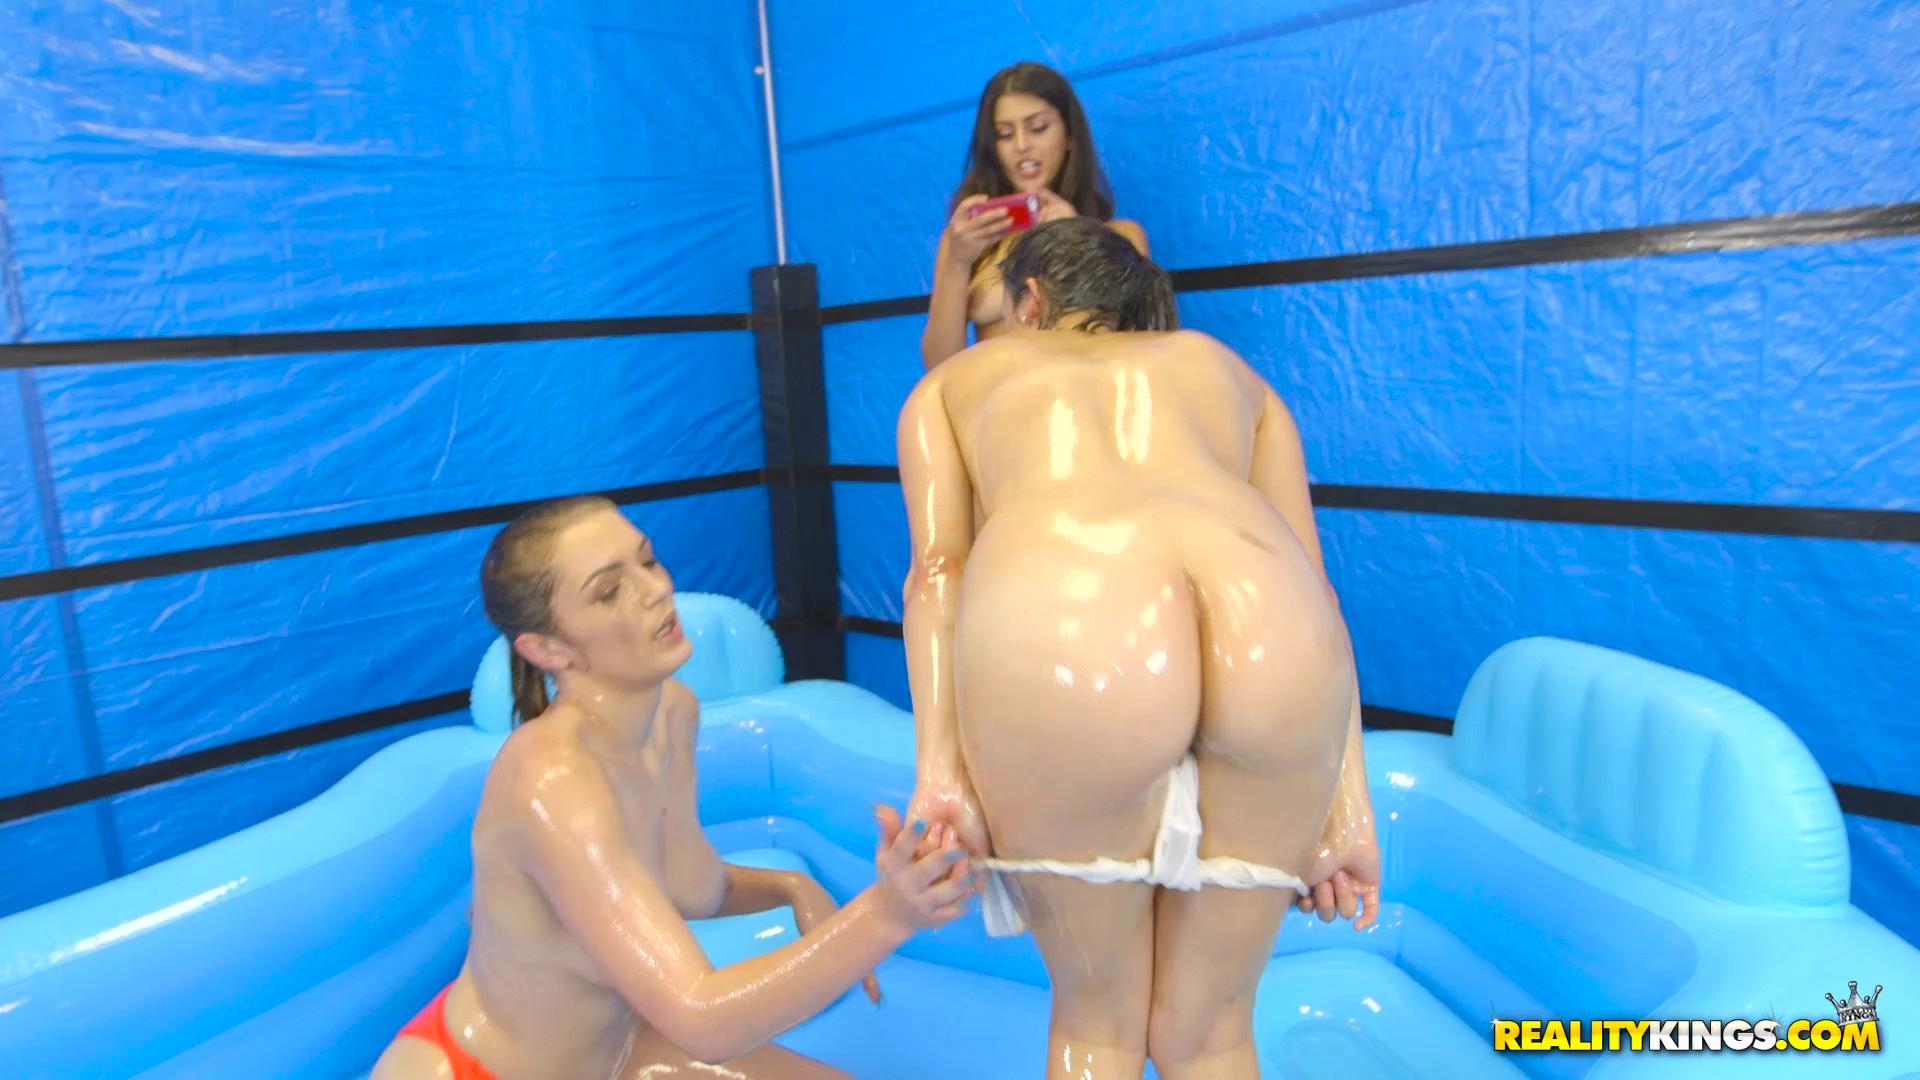 WeLiveTogether – Alexis Deen And Amber Gray Slippery Swimsuits